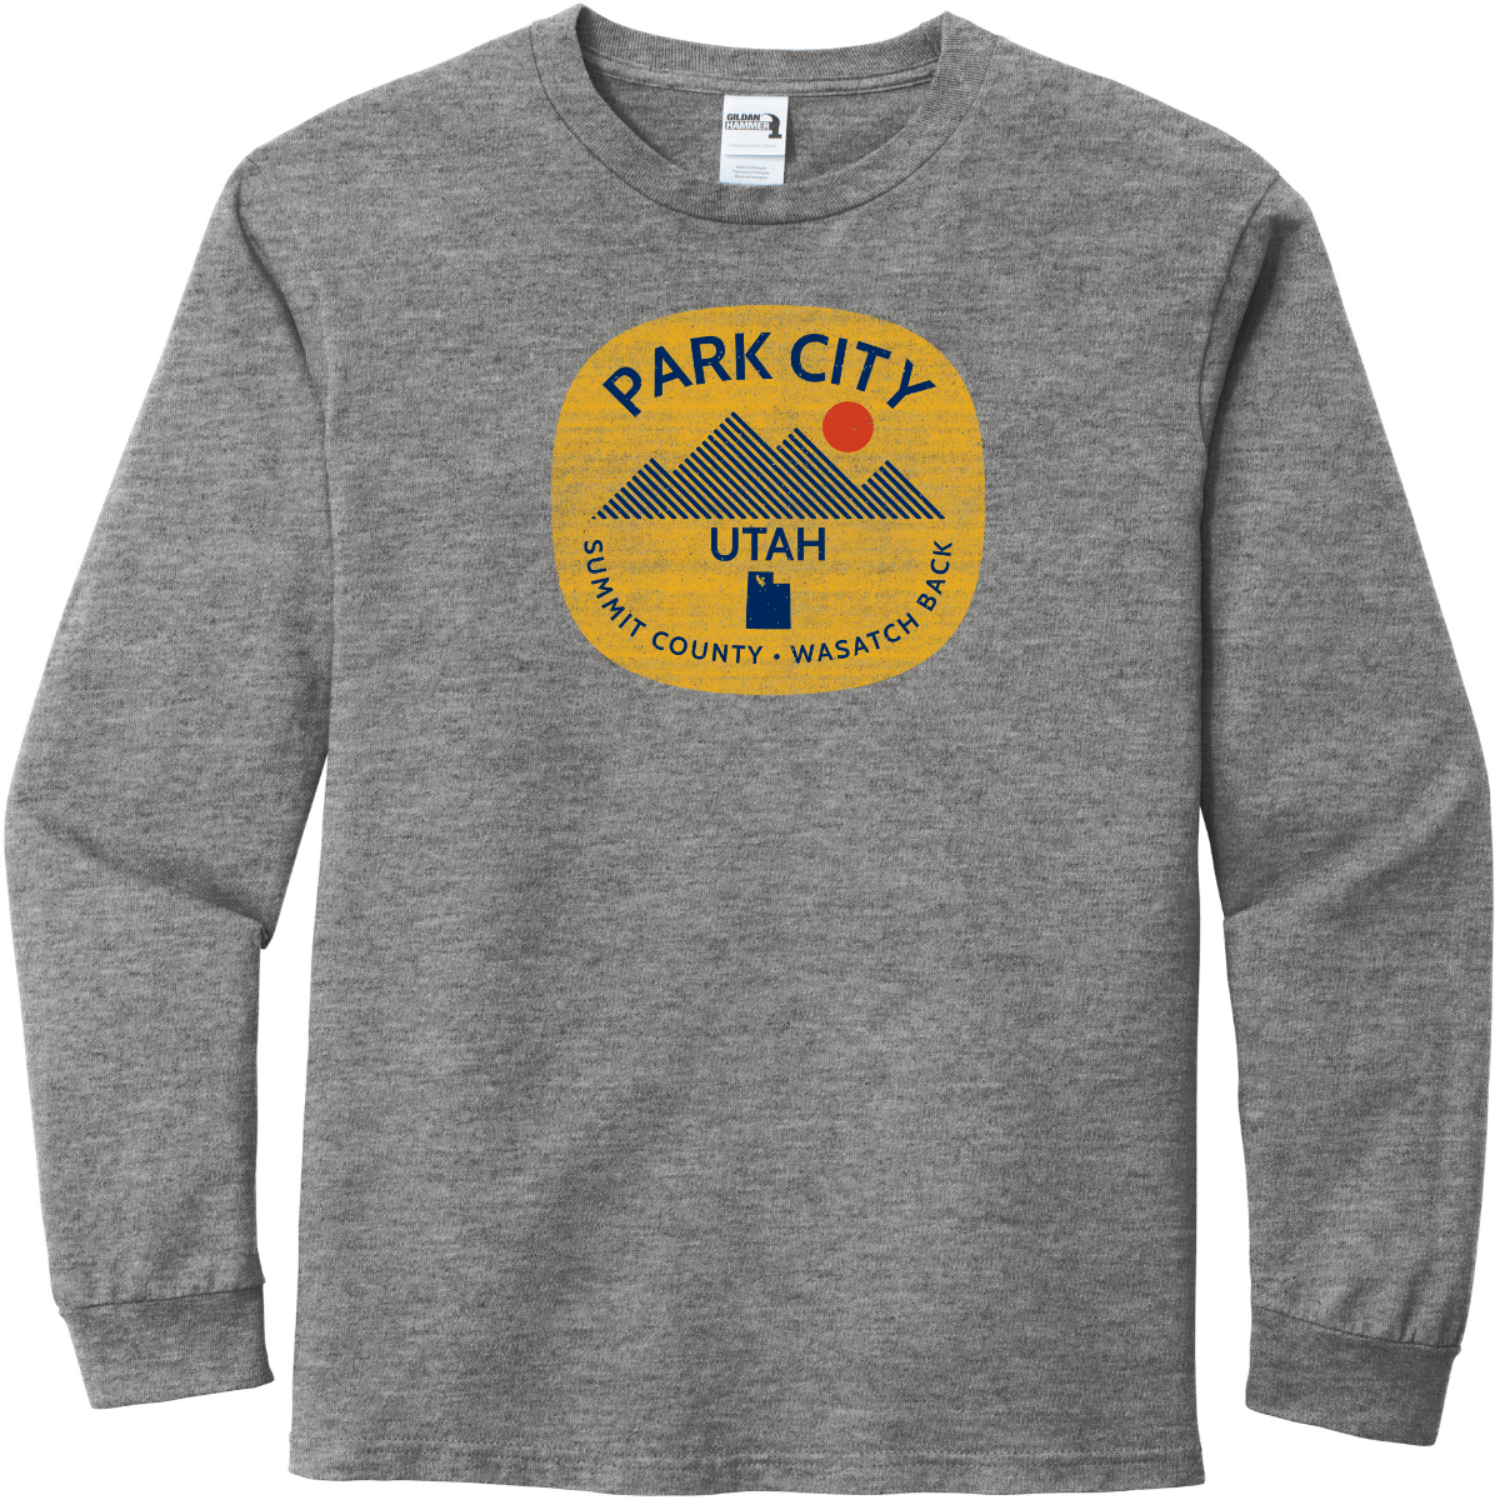 Park City Utah Long Sleeve T-Shirt Graphite Heather Gildan Hammer Long Sleeve T Shirt